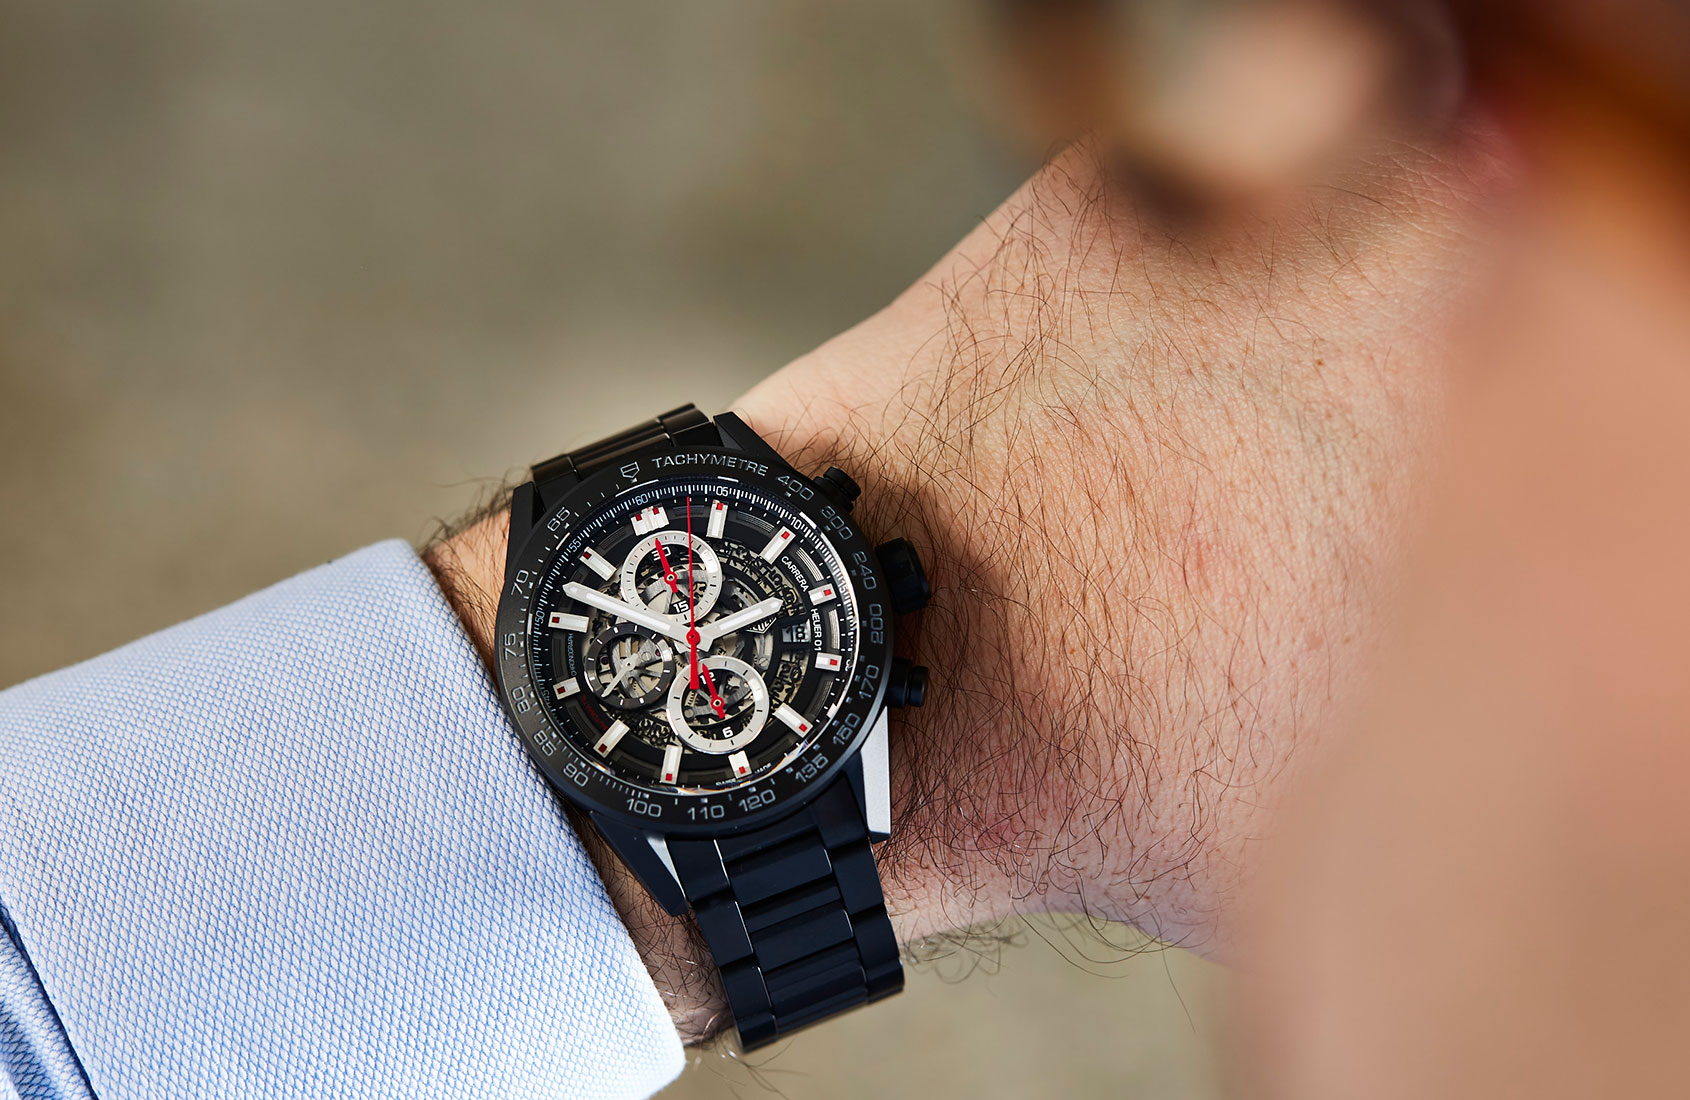 ebe600975f5f TAF Heuer Carrera Heuer 01 43mm in Black Ceramic In-depth Review ...